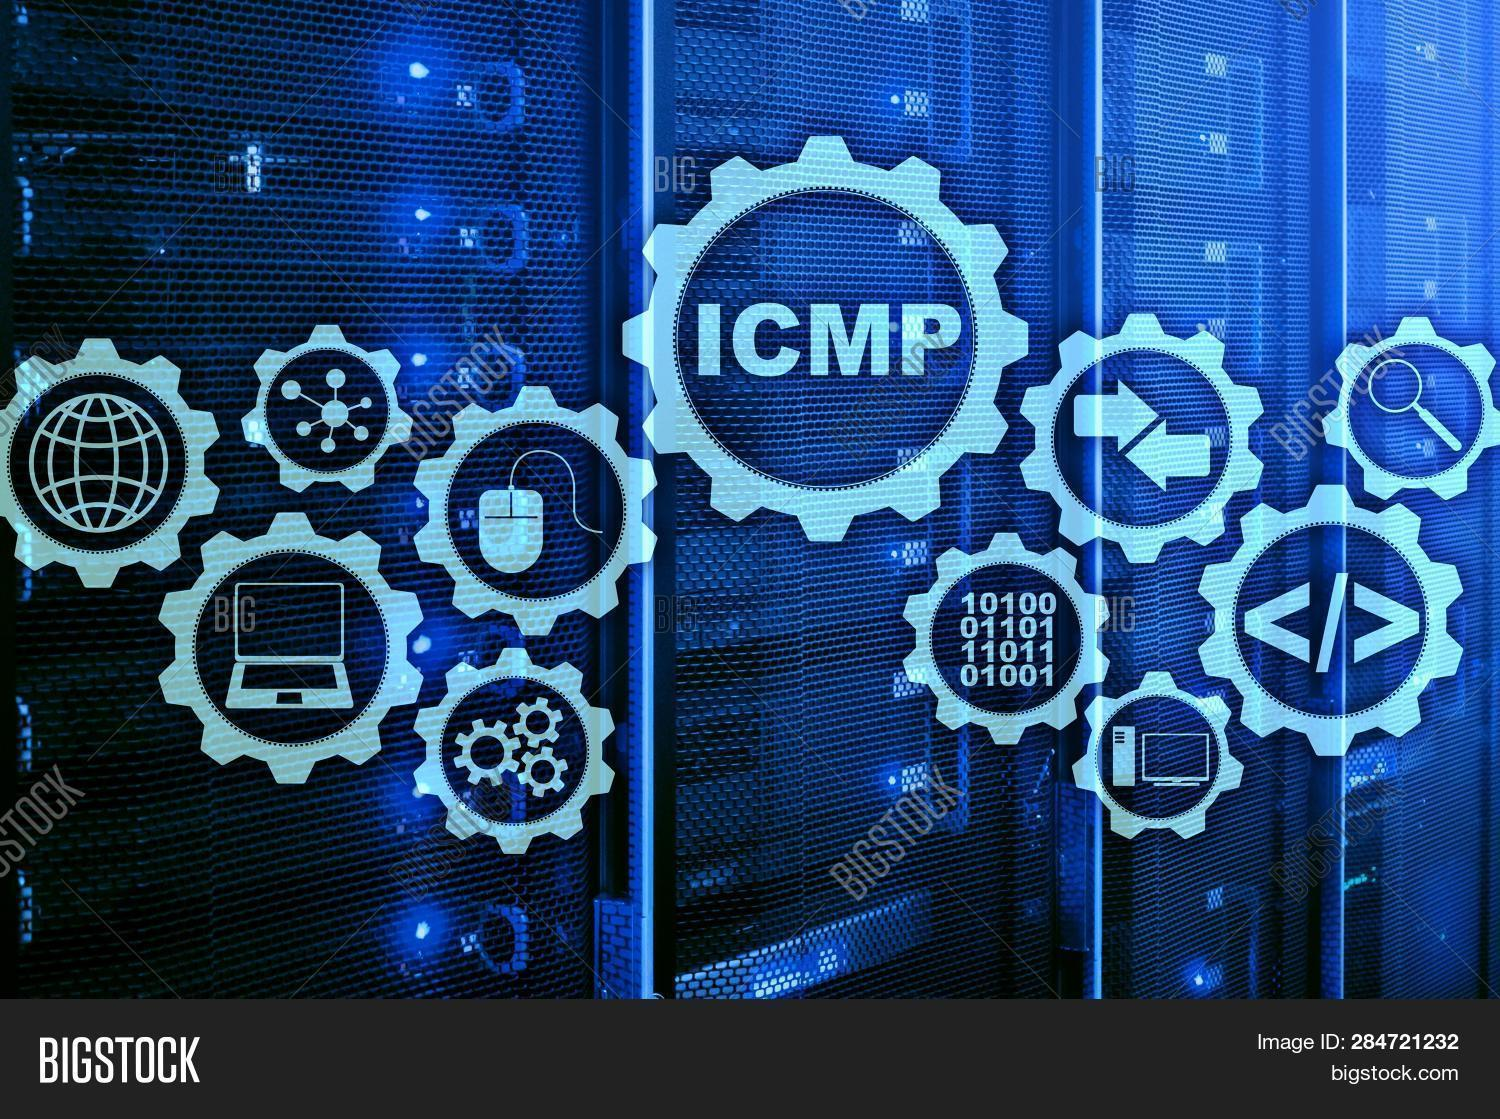 Icmp. Internet Control Message Protocol. Network Concept. Server Room On Background.